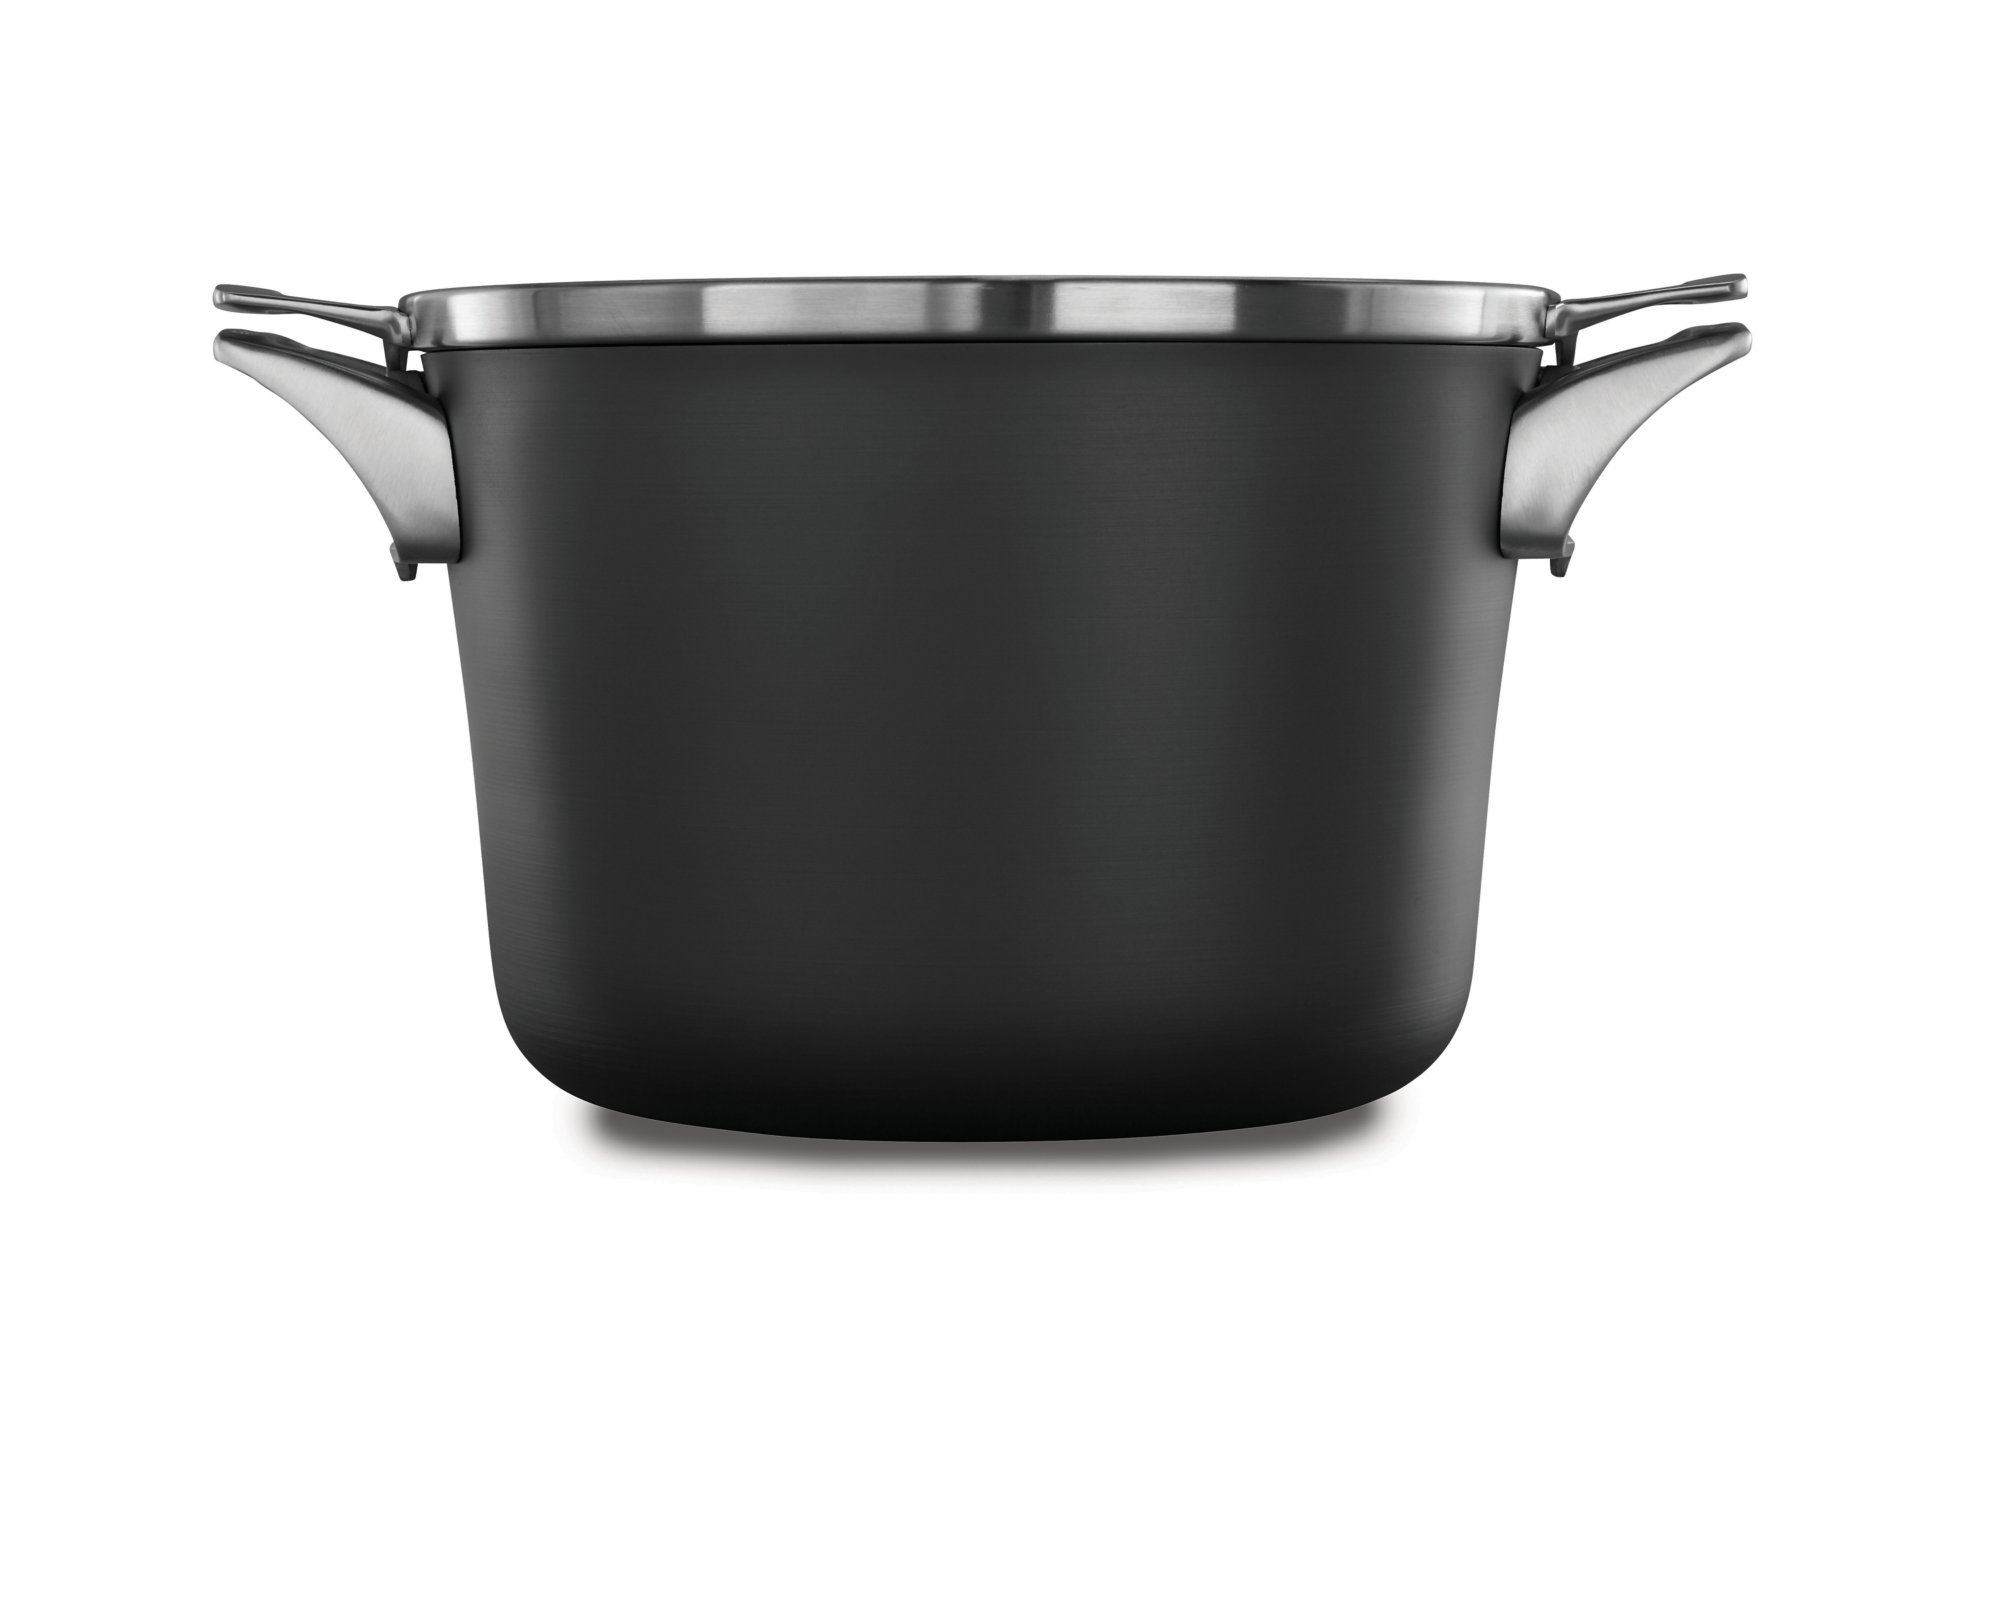 Calphalon Premier™ Space Saving Hard Anodized Nonstick 8 qt. Stock Pot with Cover